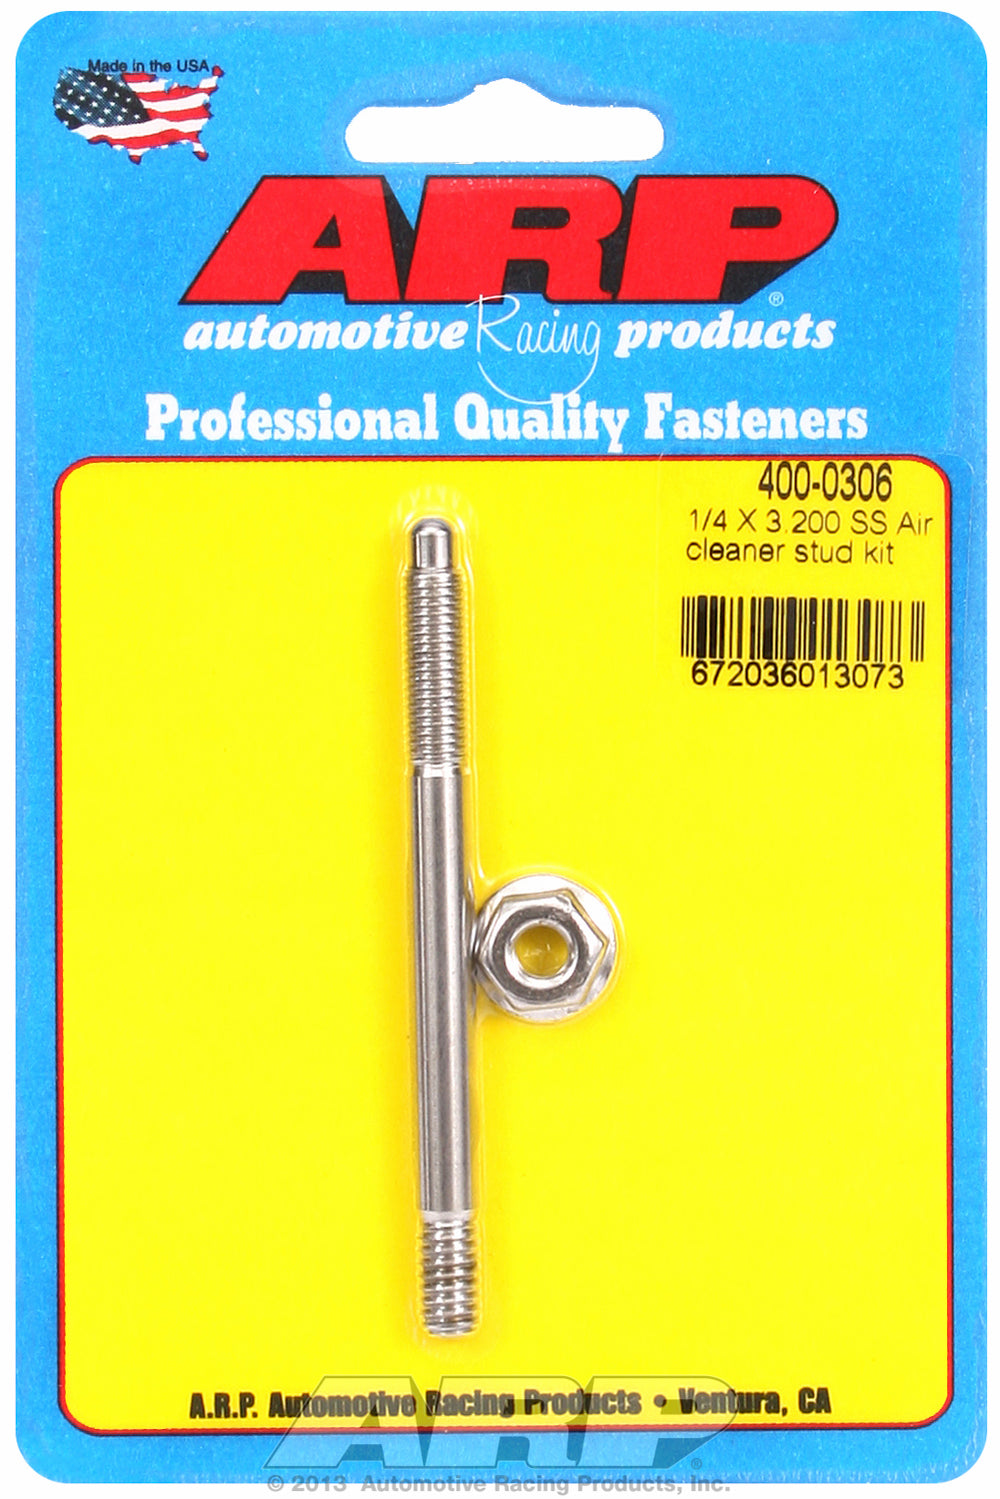 1/4 x 3.200 SS air cleaner stud kit